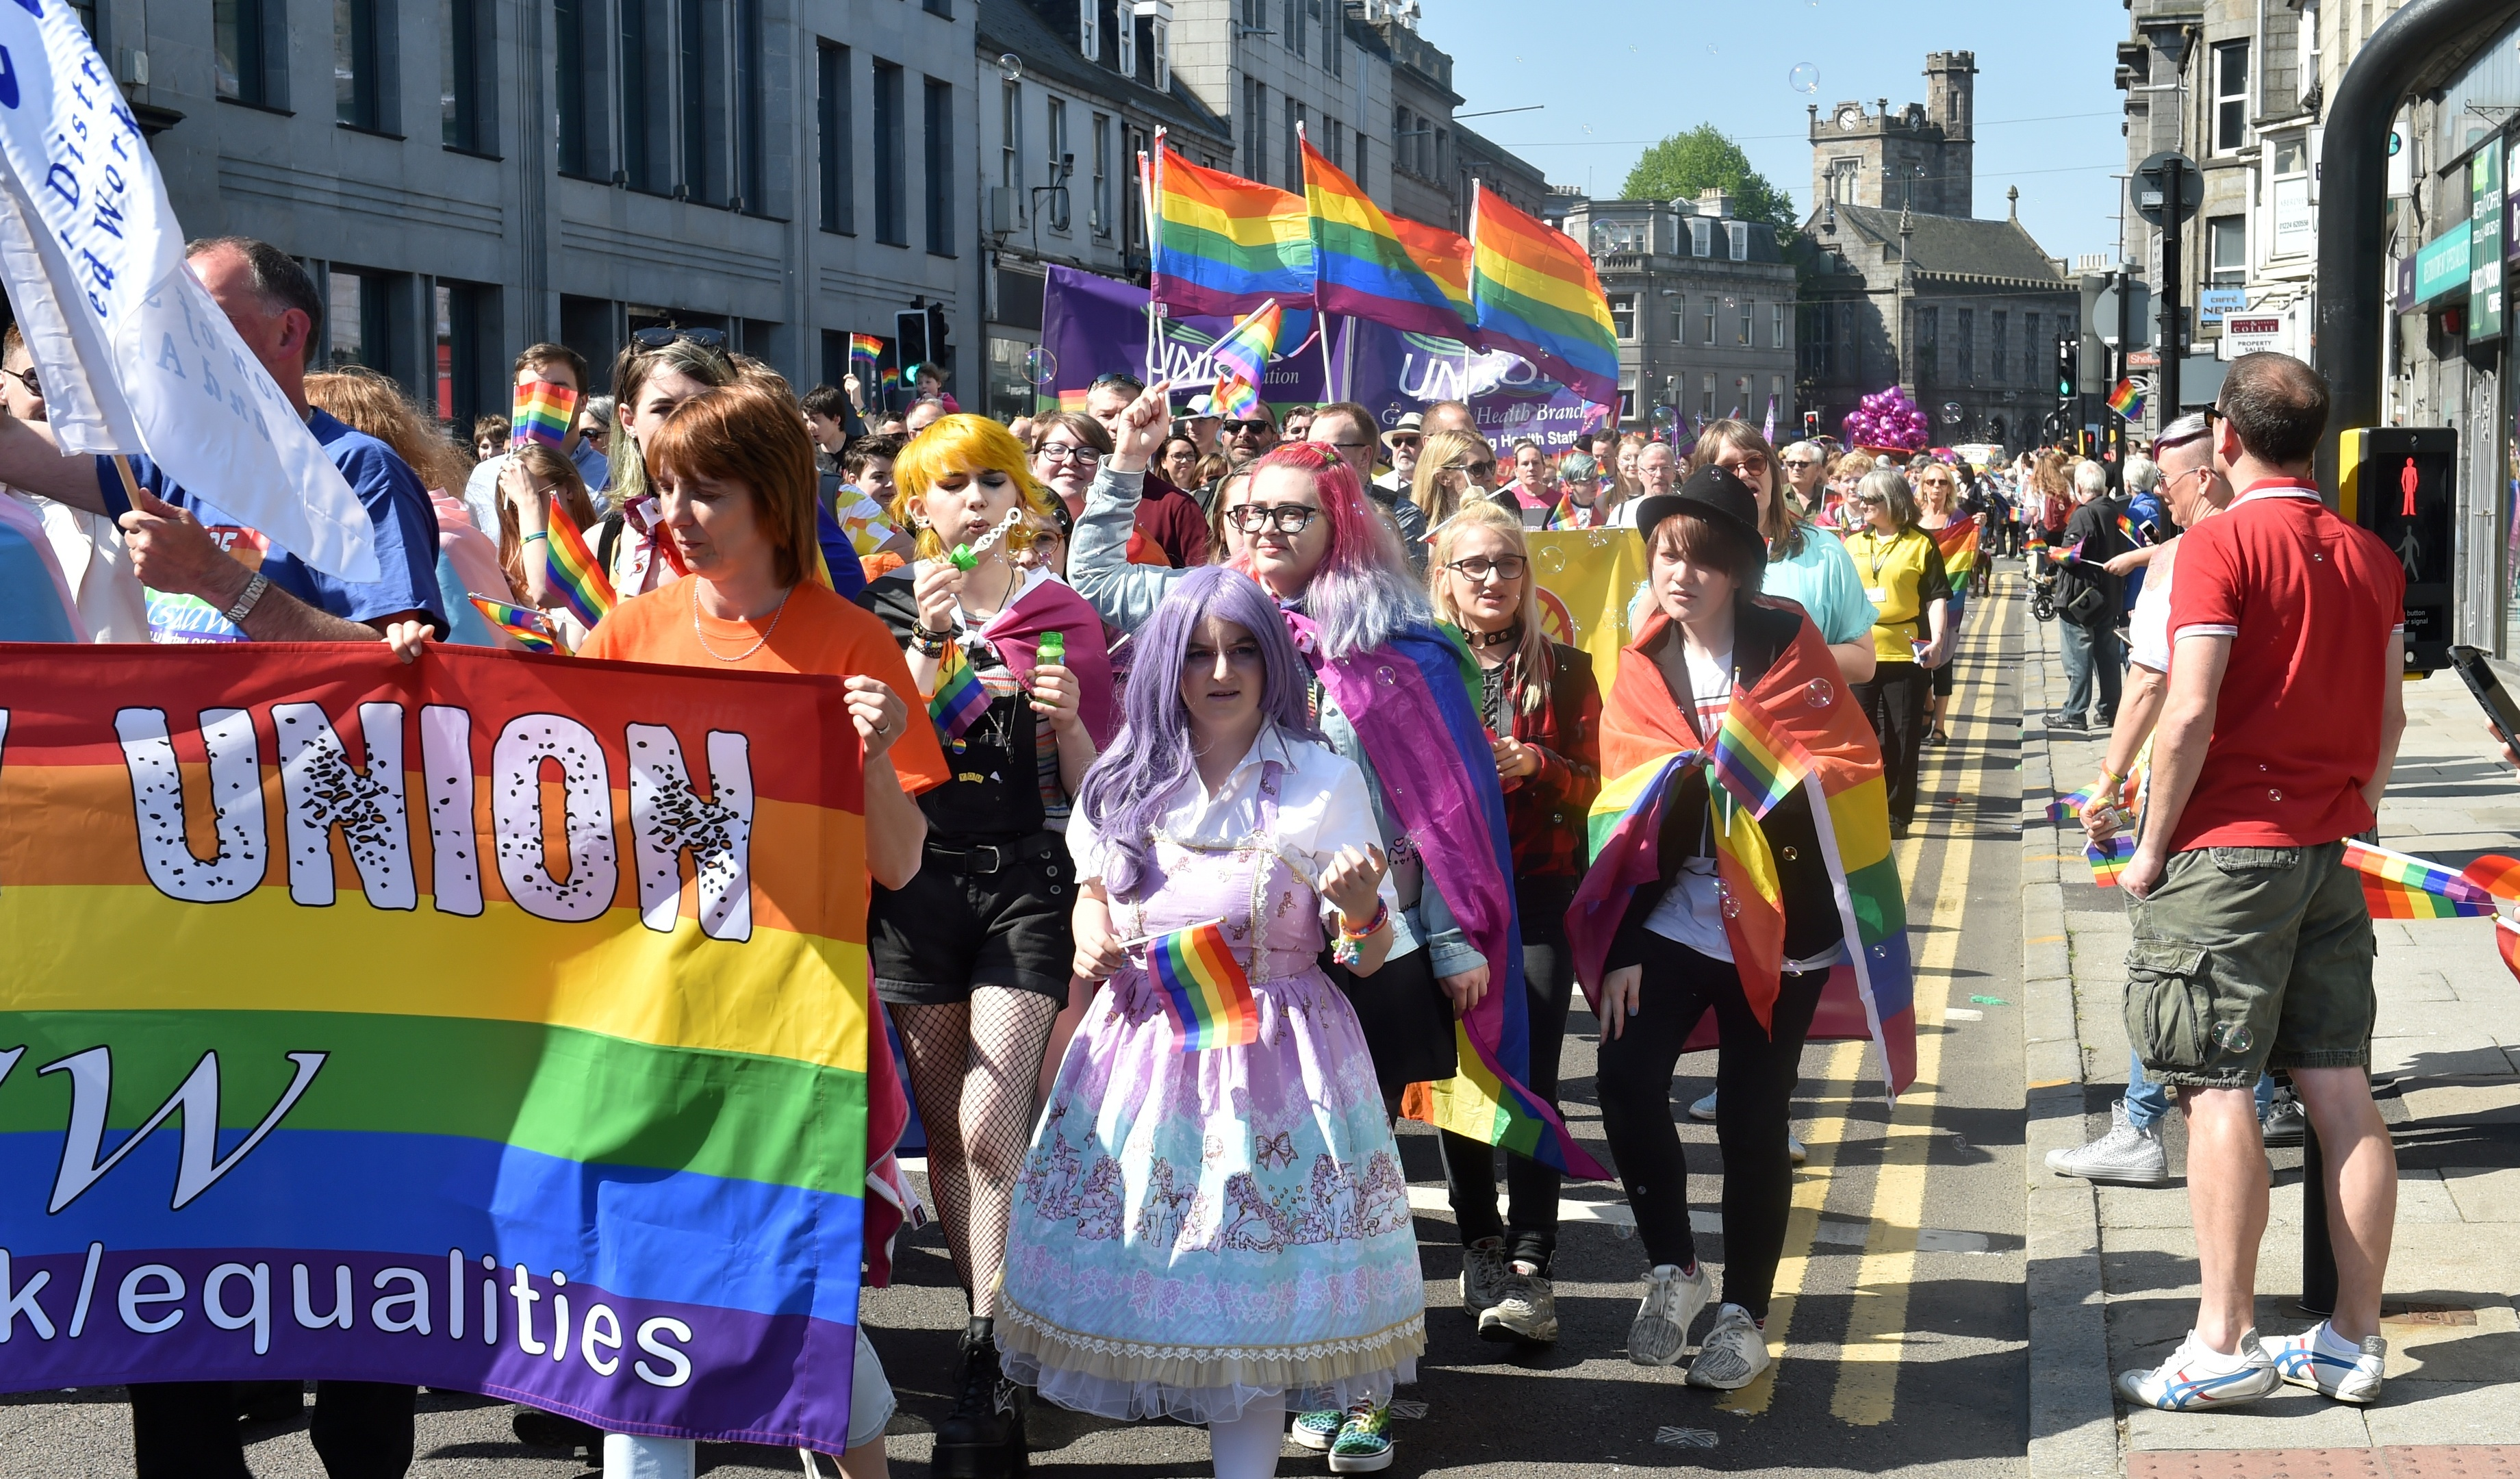 Grampian Pride marched down Union Street in Aberdeen. Picture by Colin Rennie